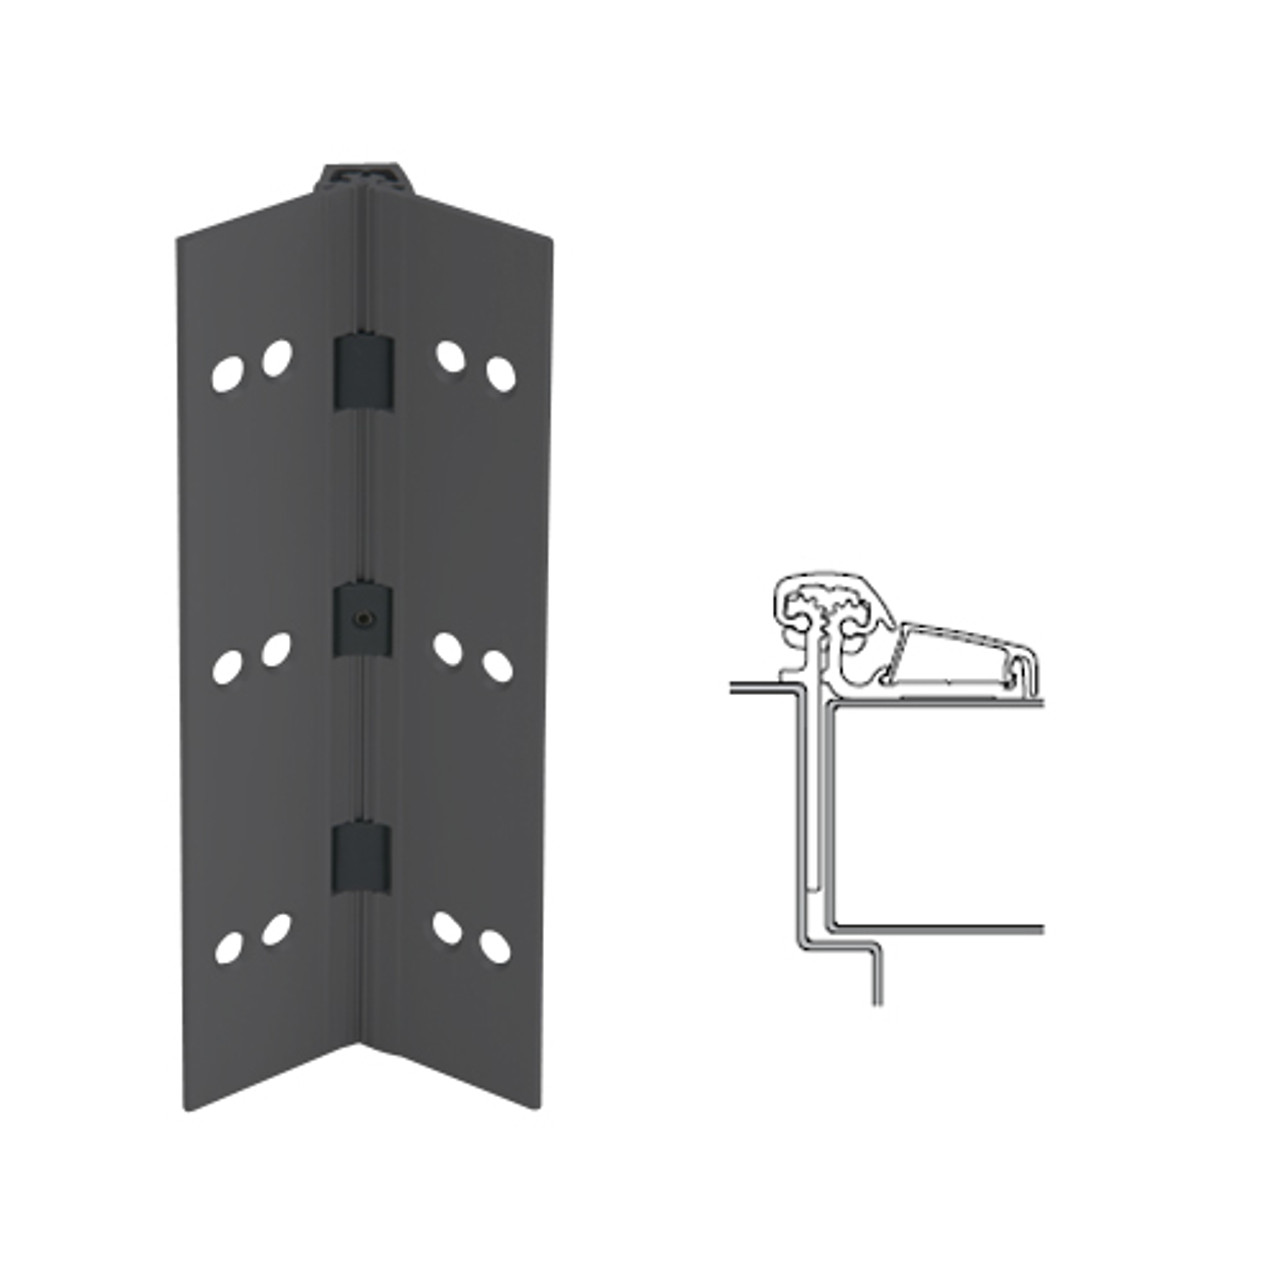 053XY-315AN-120-WD IVES Adjustable Half Surface Continuous Geared Hinges with Wood Screws in Anodized Black